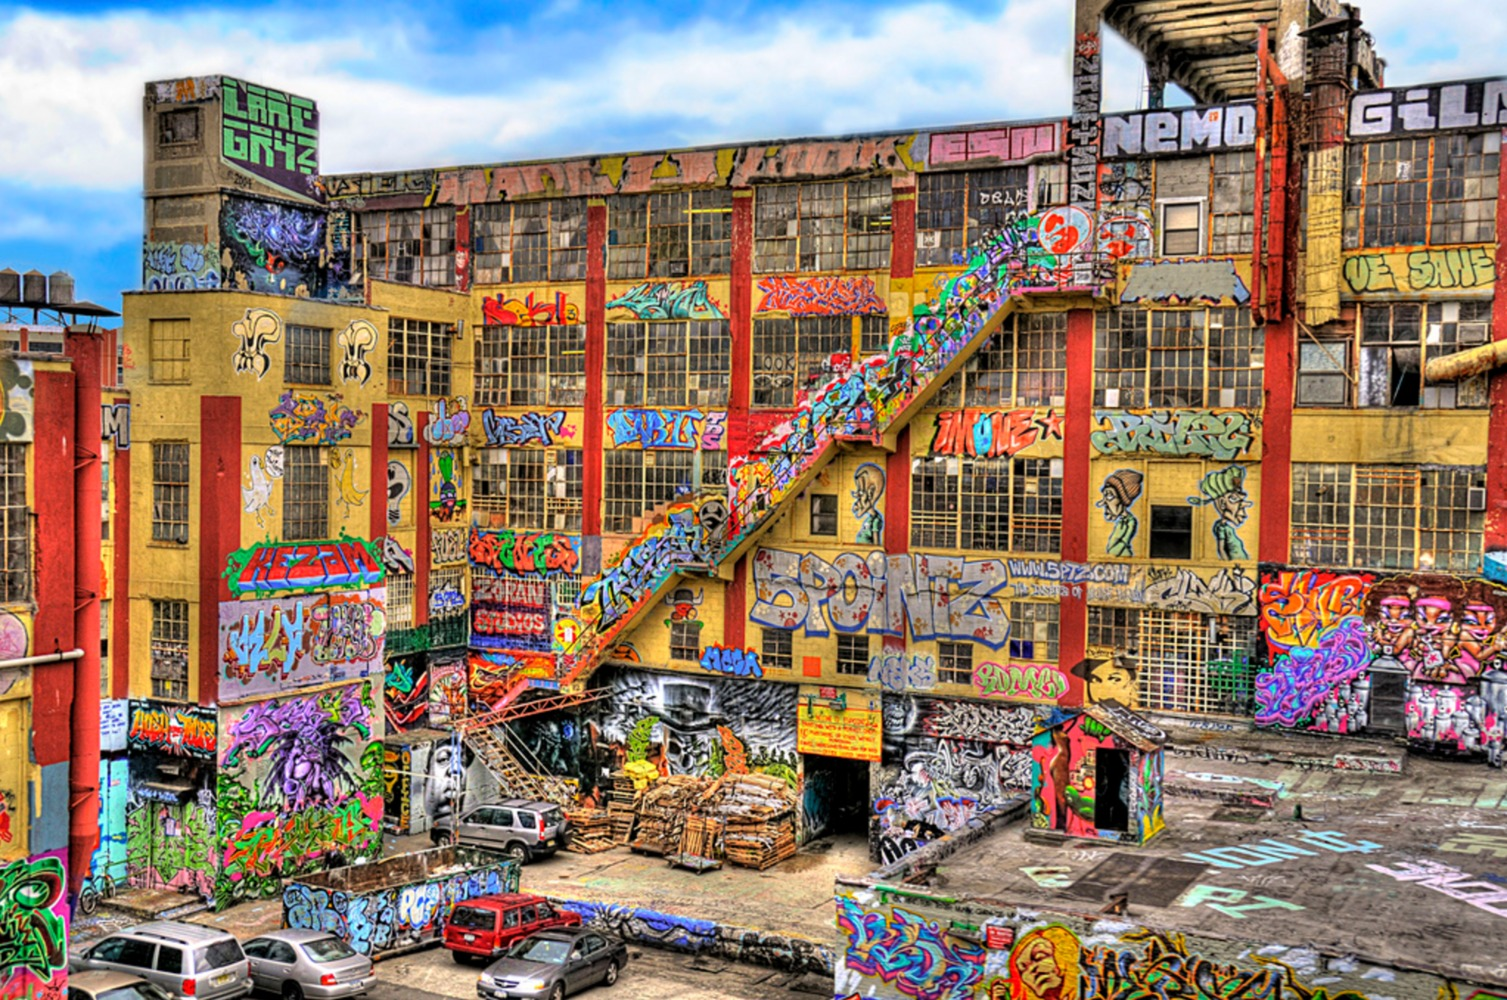 How developers turned graffiti into a trojan horse for gentrification 5 pointz